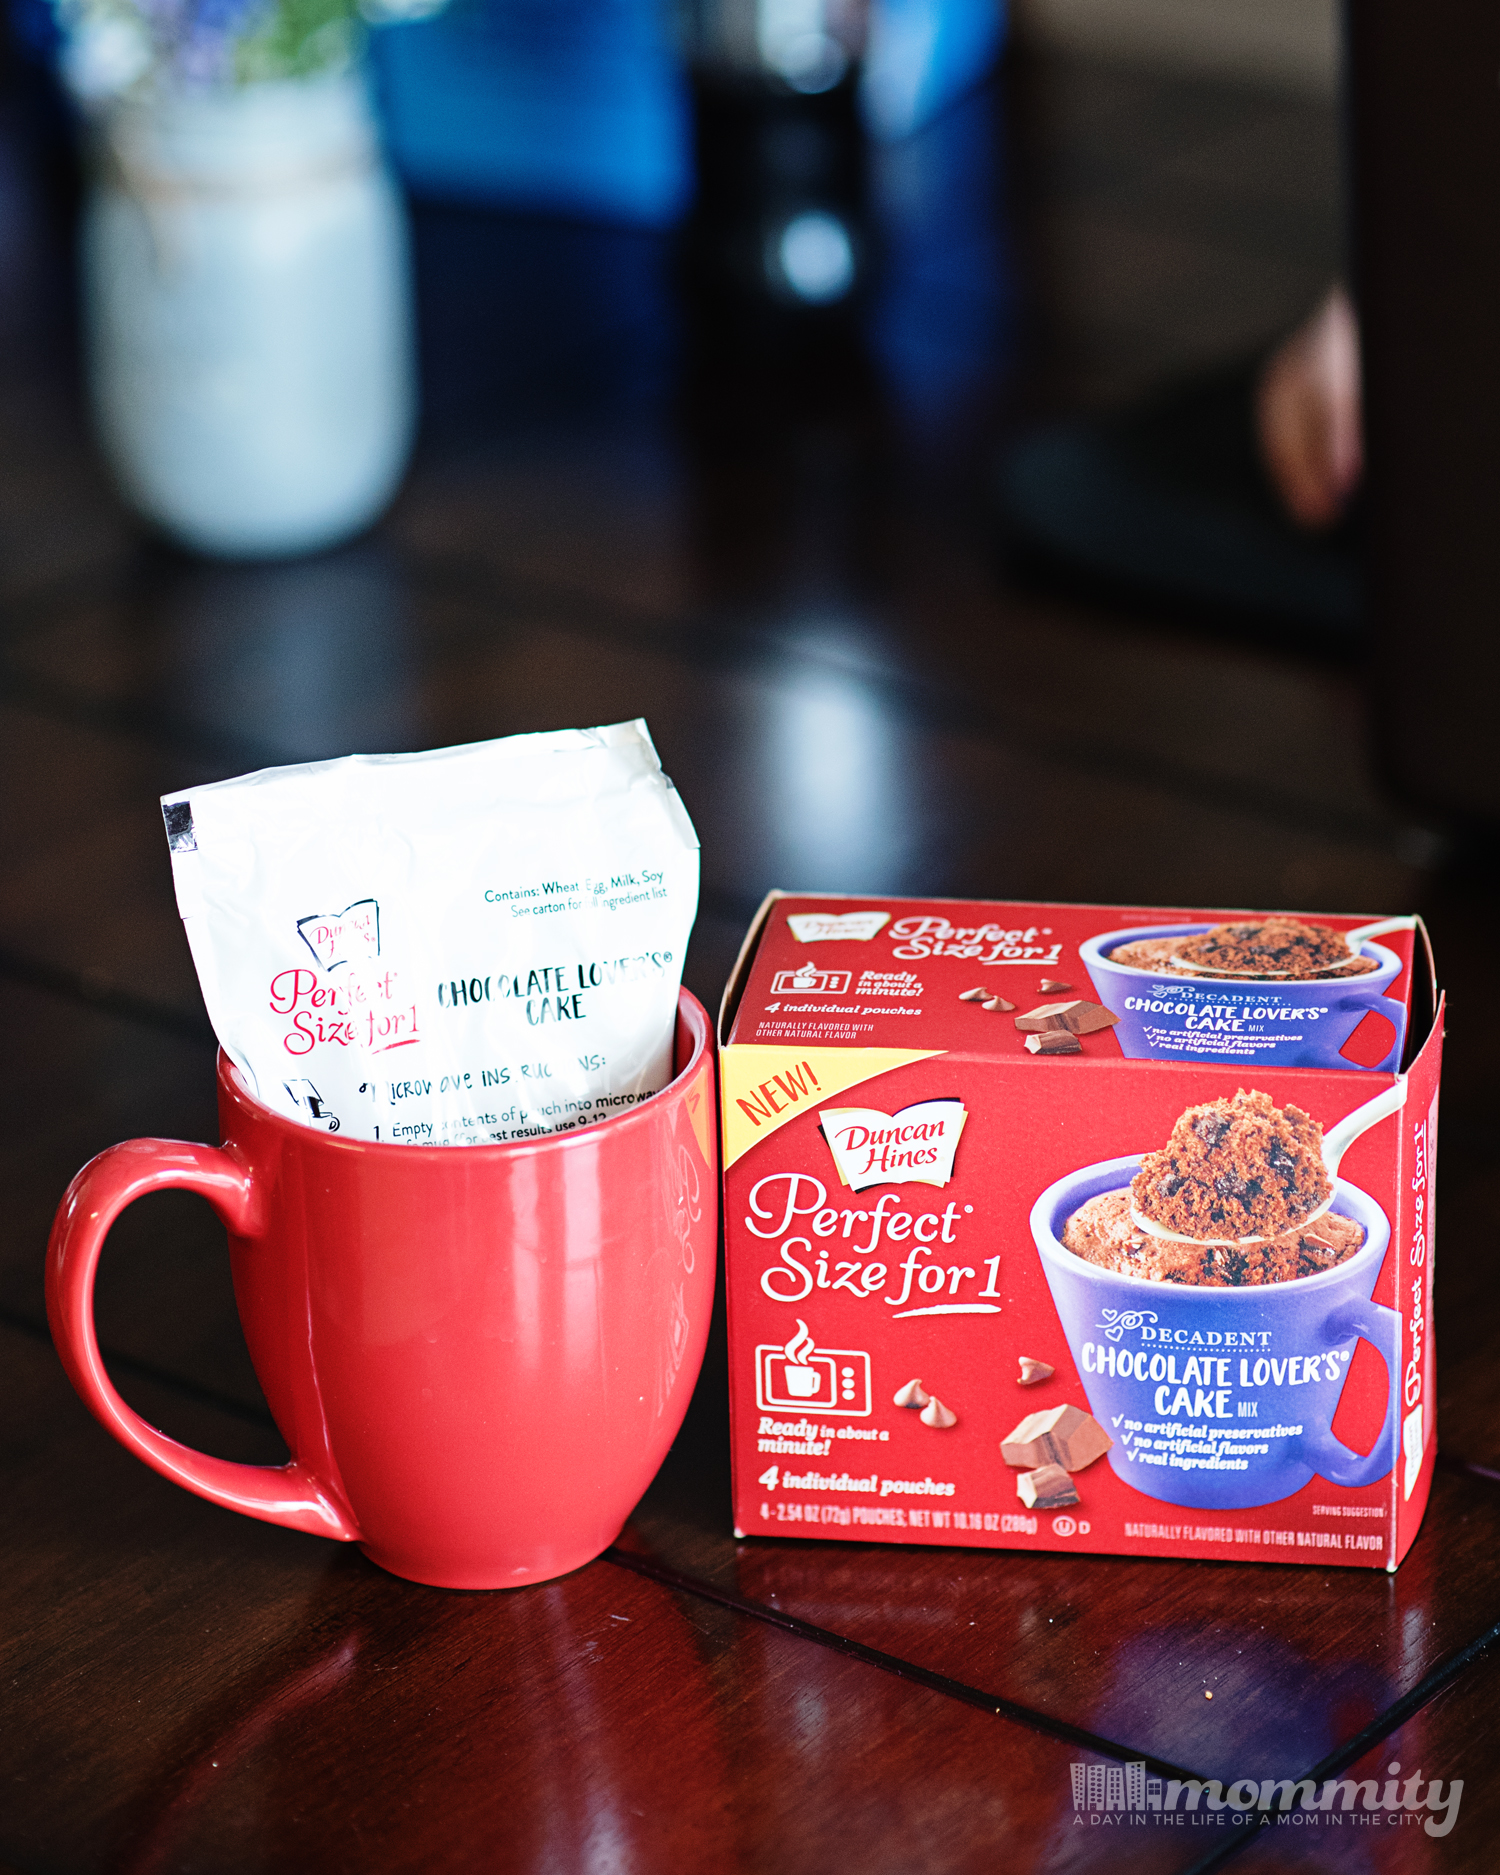 Decadent, creamy cake can be made in a coffee mug, in 18 different varieties with flavors for morning, afternoon or evening indulgence. Which mix-ins will you use in this perfect size for 1 cake mix?